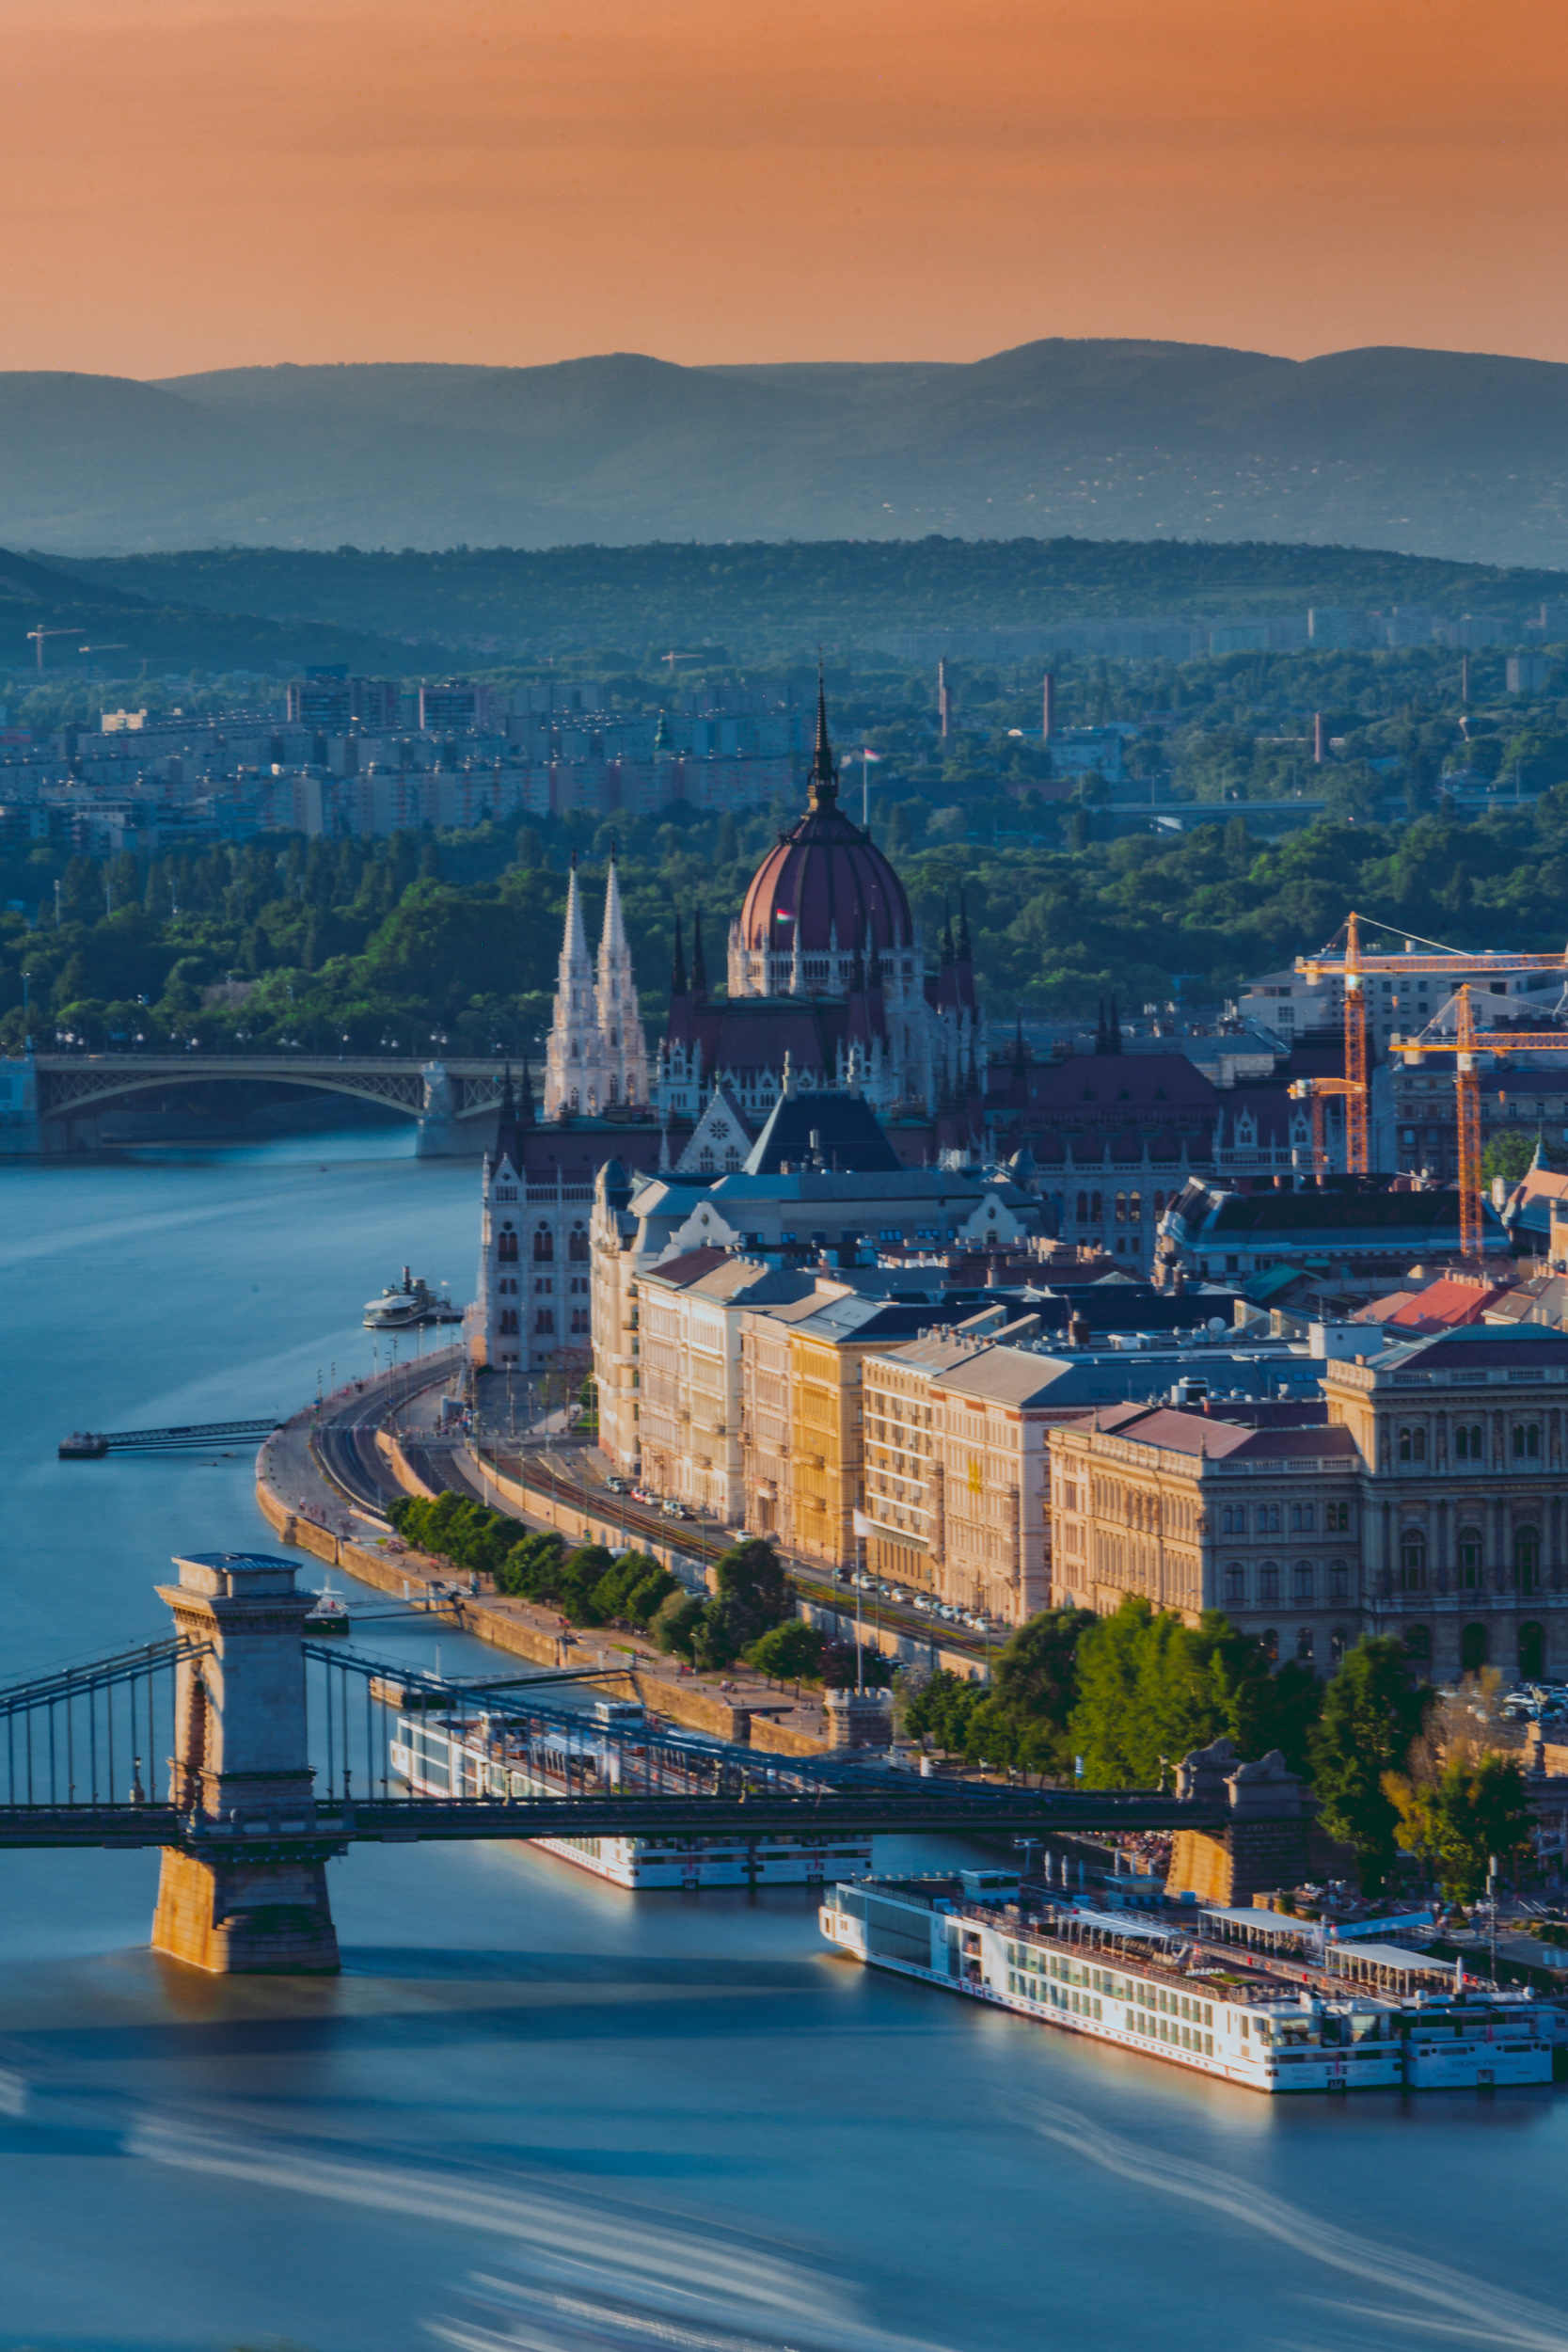 Hungarian Parliament Building and Chain Bridge from Gellért Hill